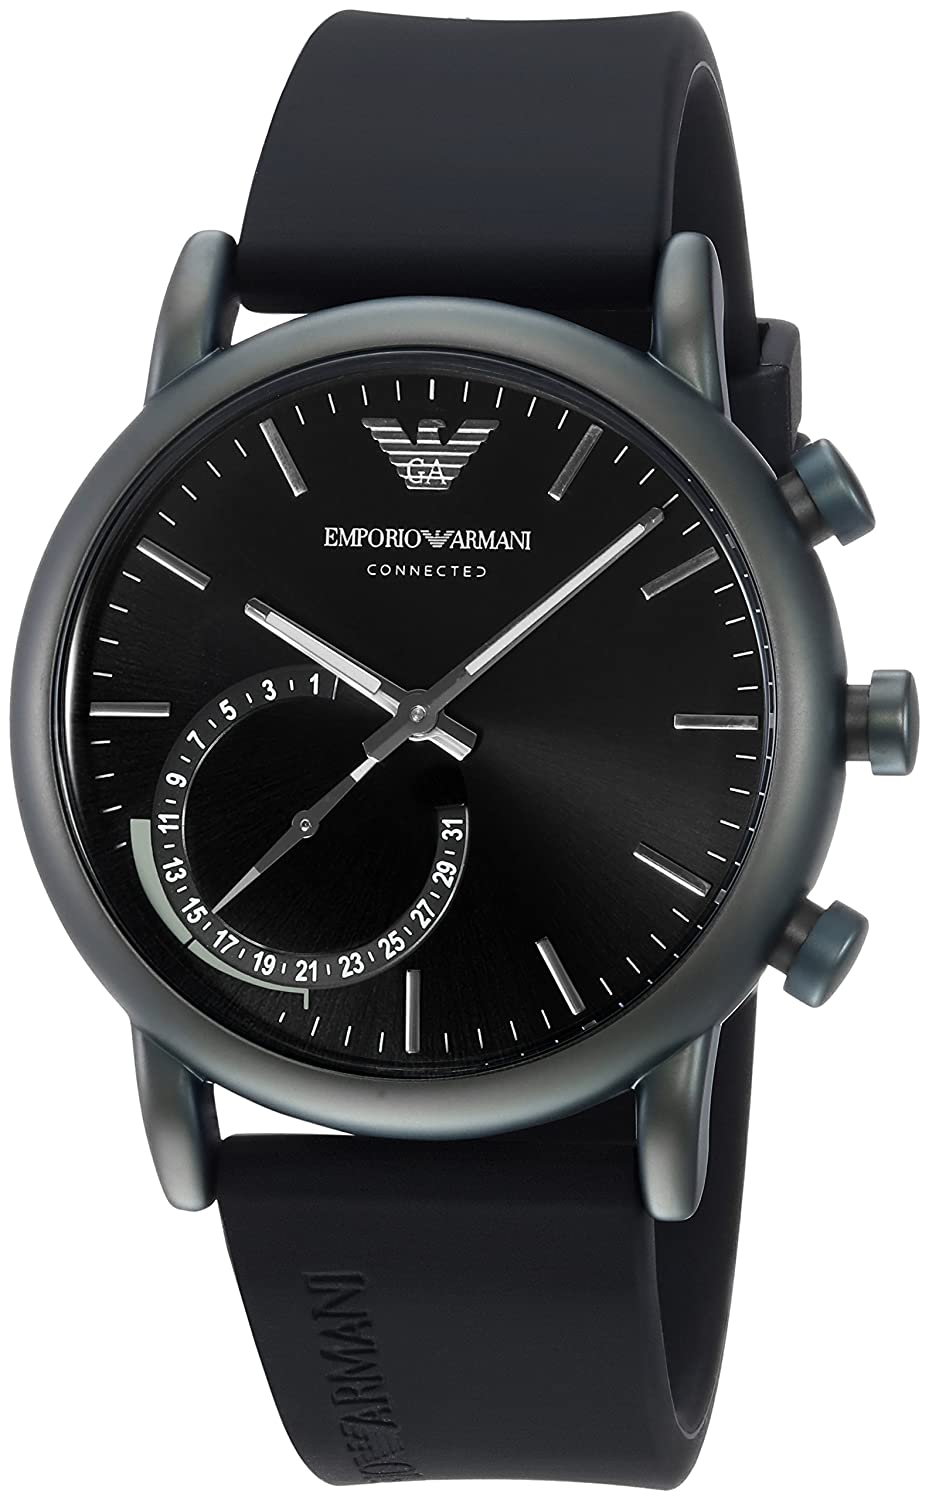 Amazon.com: Emporio Armani Smart Watch (Model: ART3016: Emporio Armani: Watches